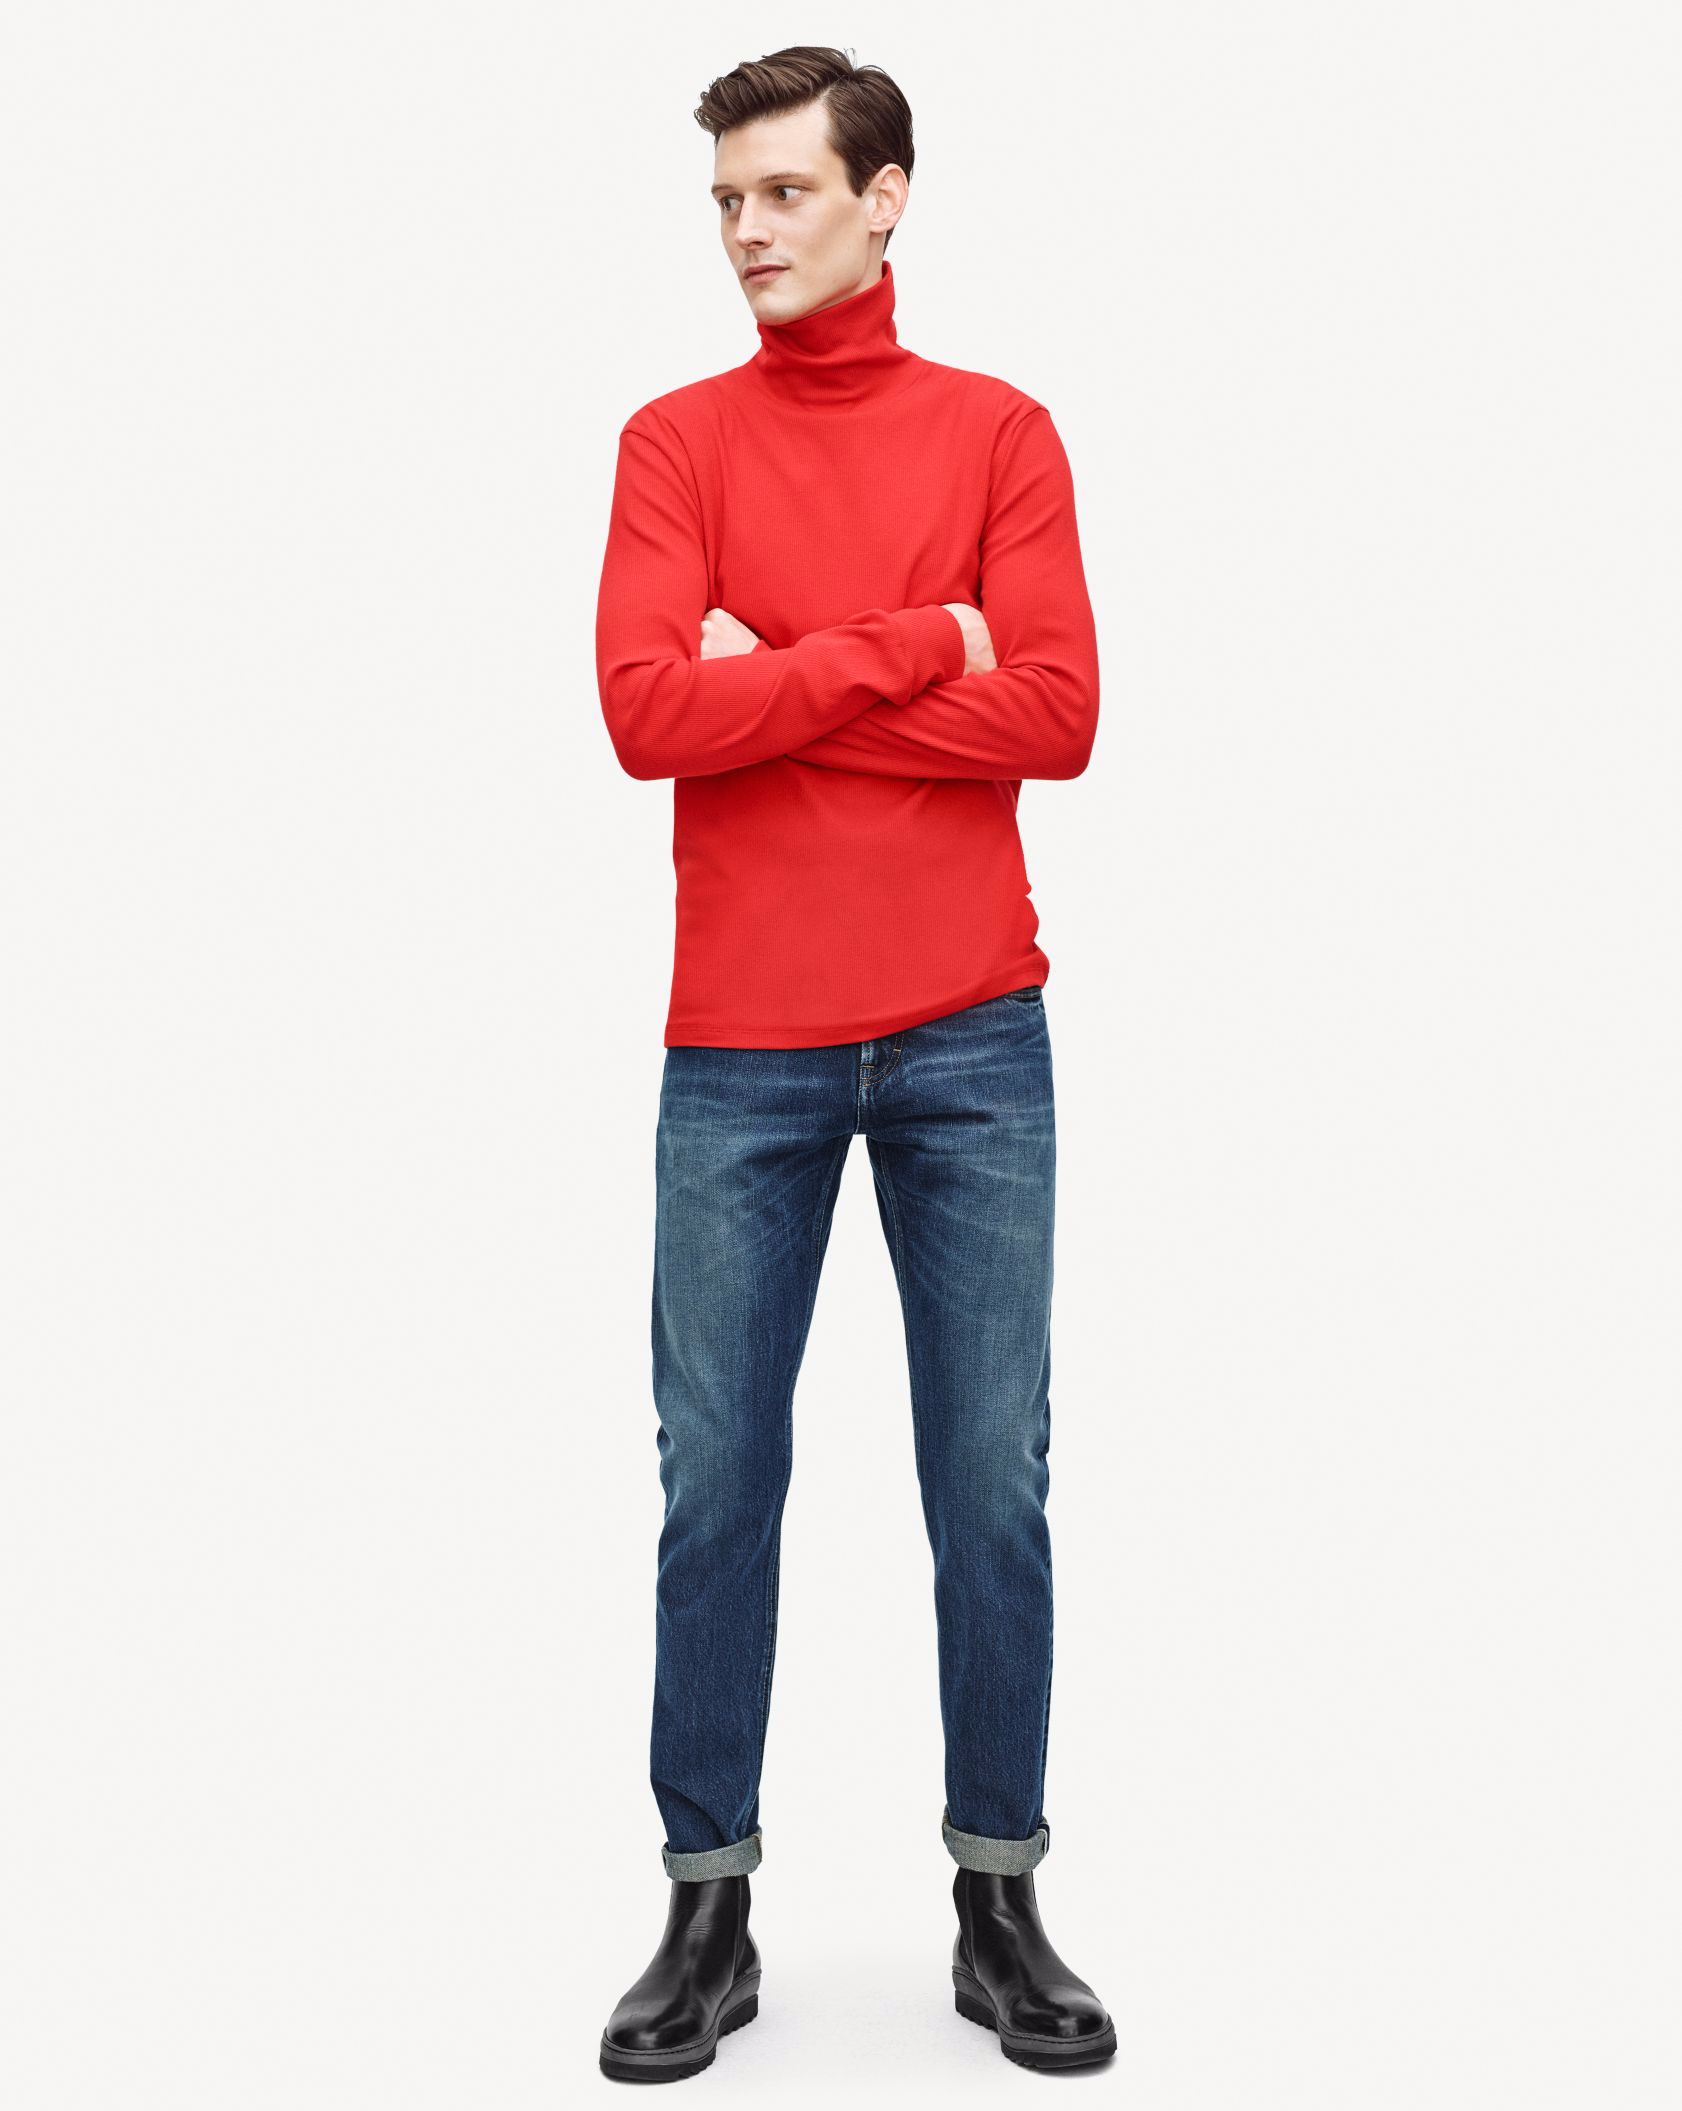 Filippa K Suggests a Simple Red Style Statement